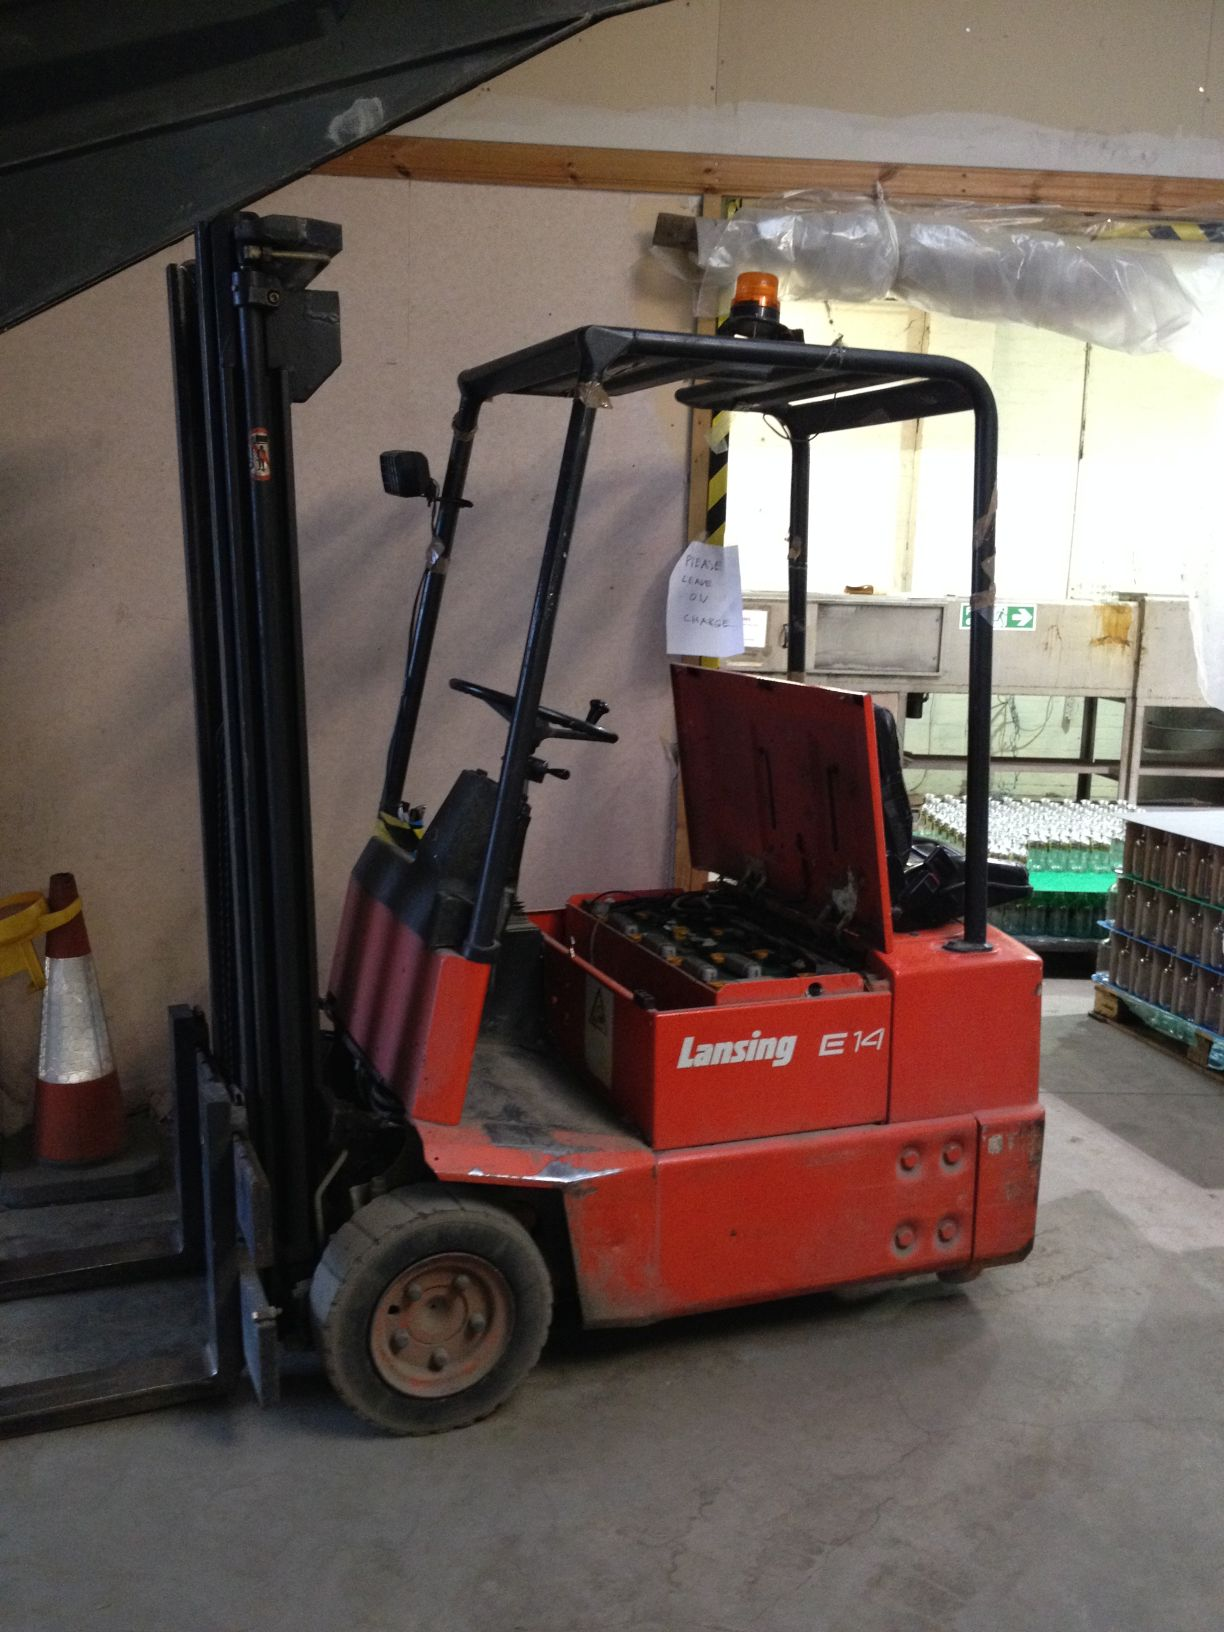 Company fined after worker was injured by a fork lift truck